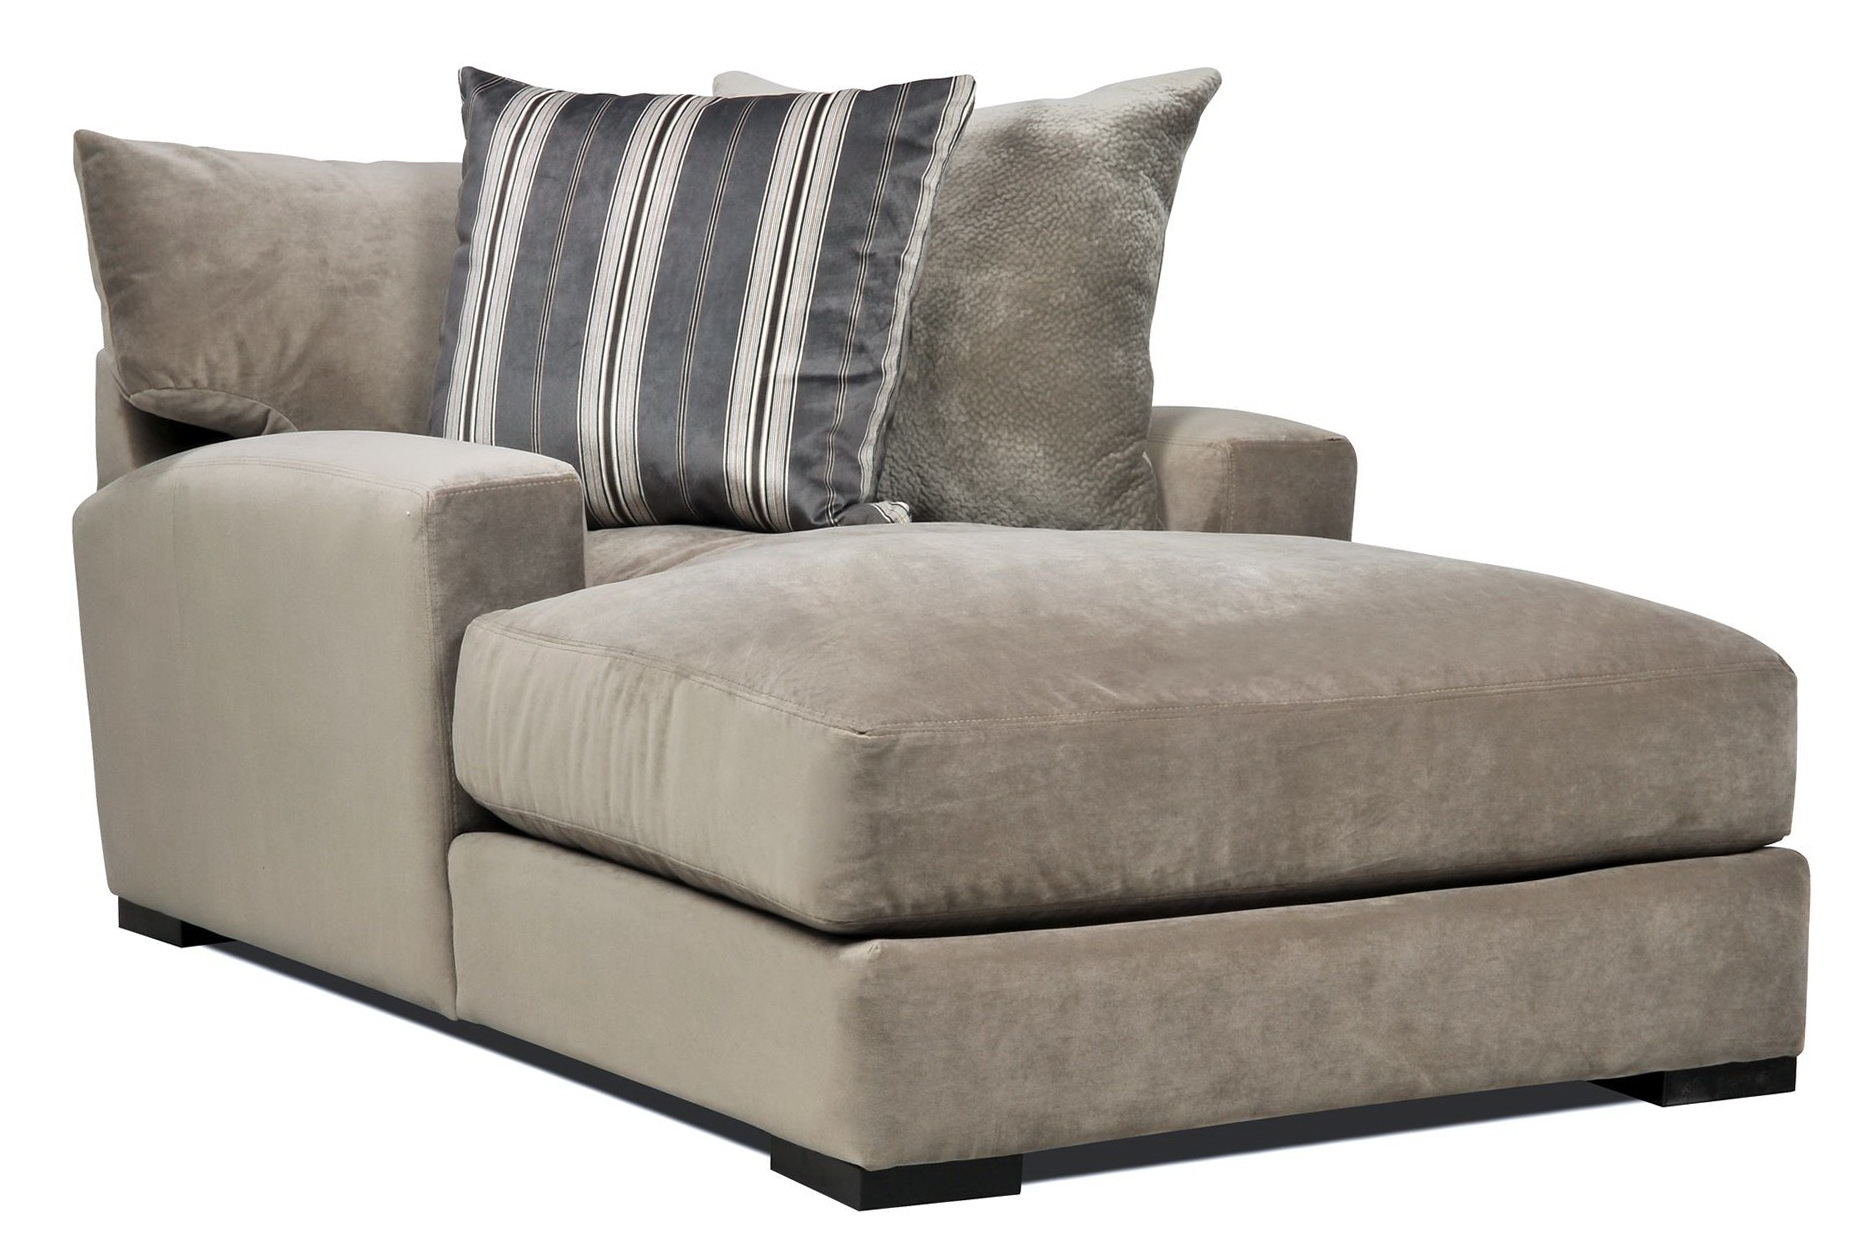 Chaise Lounge Chairs For Sunroom Pertaining To Current Double Wide Chaise Lounge Indoor With 2 Cushions (View 4 of 15)